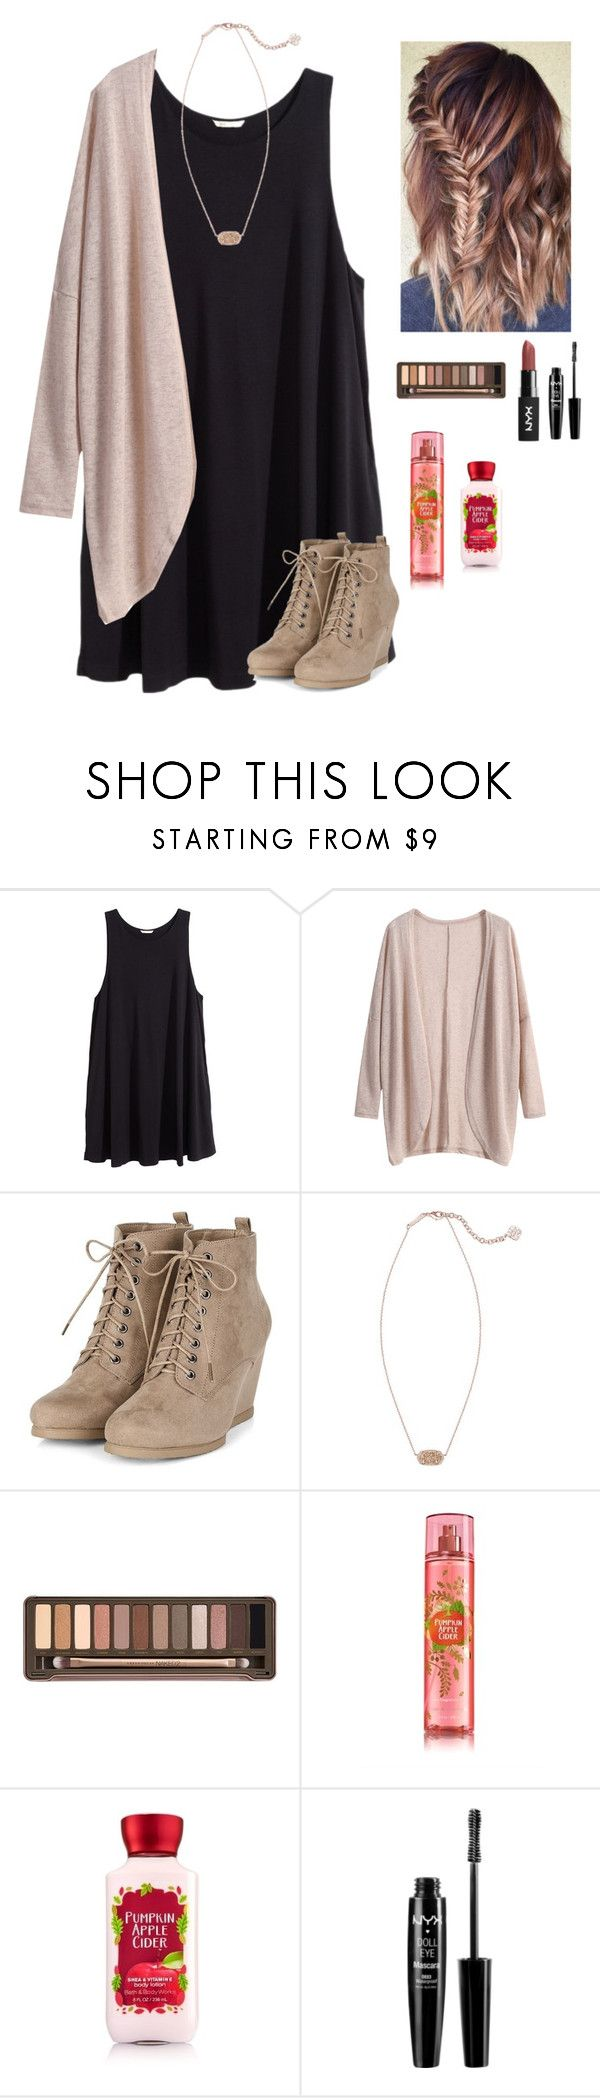 """Heading to a Saturday mass"" by a-devo ❤ liked on Polyvore featuring H&M, Kendra Scott, Urban Decay and NYX"